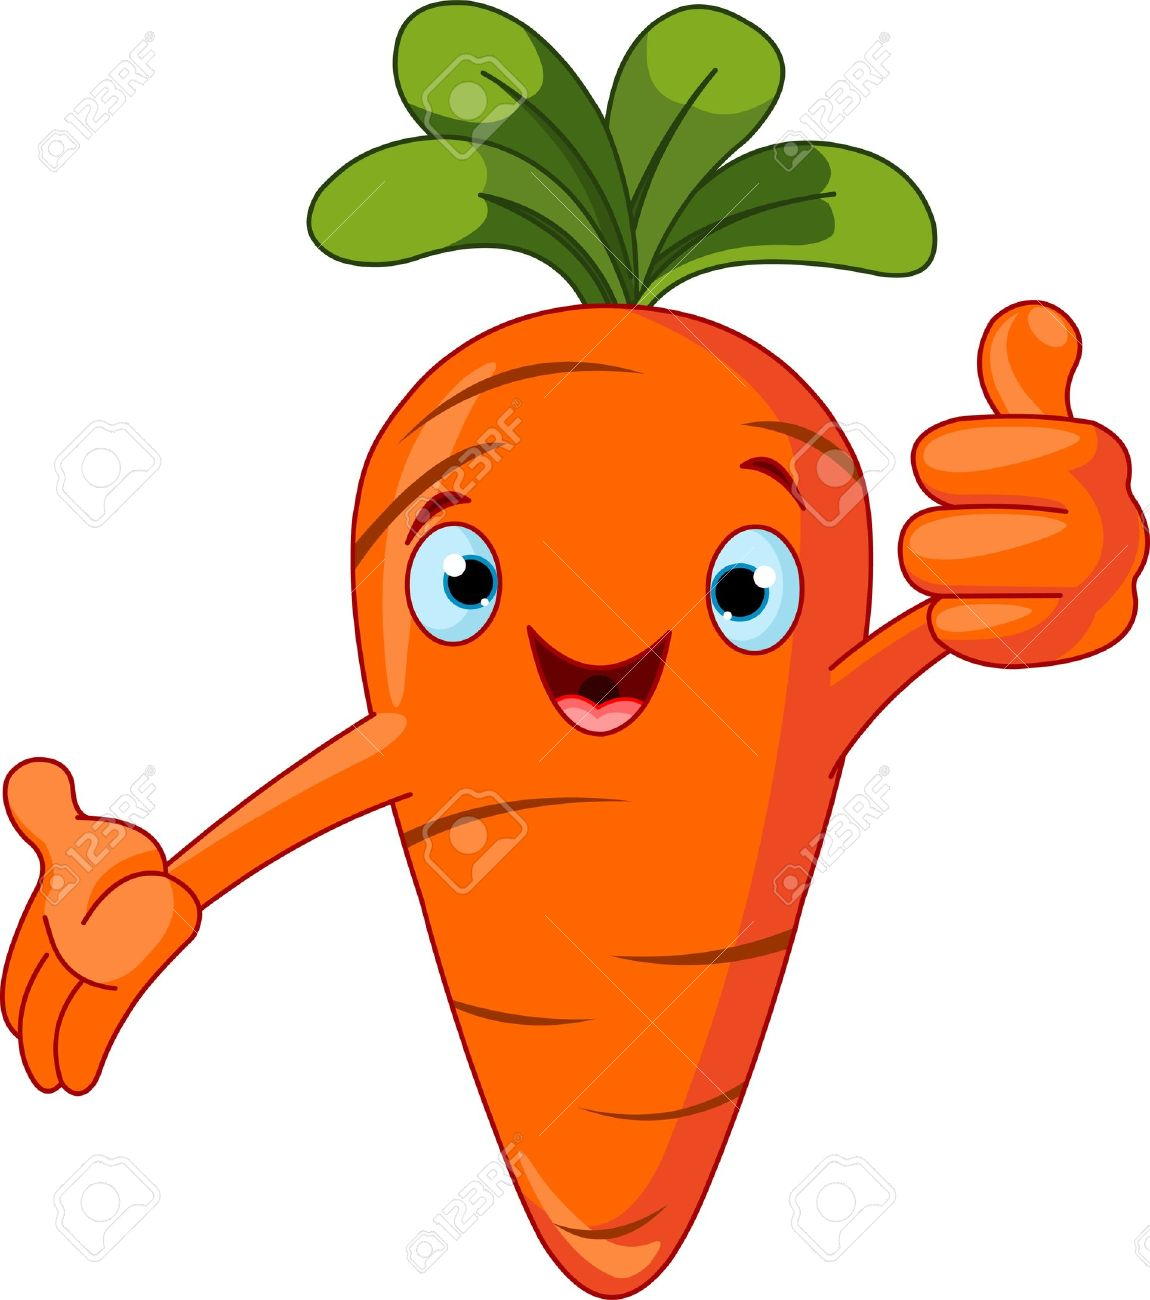 Illustration of a Carrot Character giving thumbs up - 8834320